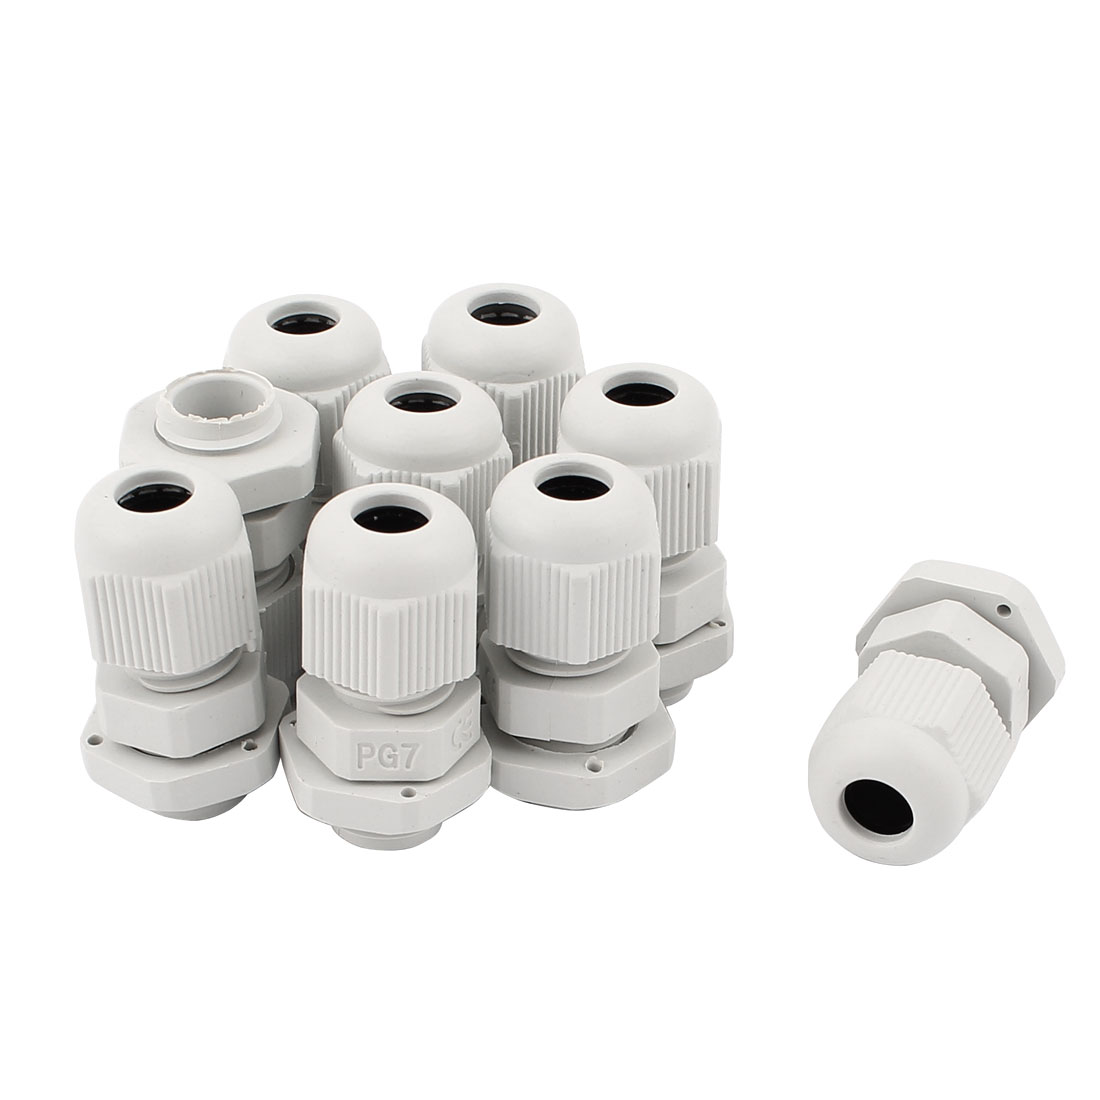 9pcs Plastic PG7 1/4NPT Thread 3-6.5mm Wire Waterproof Fastener Cable Gland